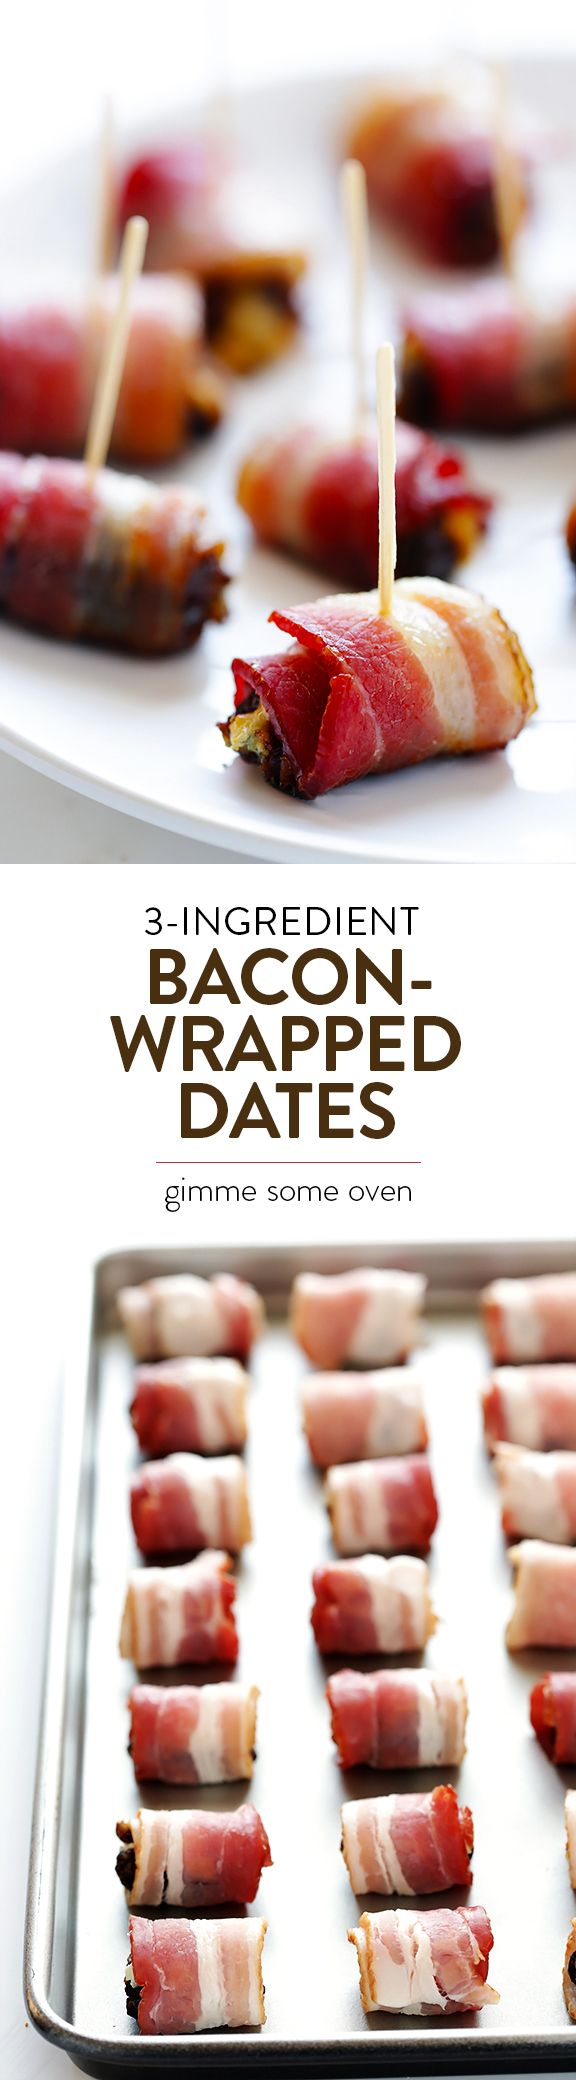 All you need are 3 ingredients to make this delicious, easy appetizer!  They're always the hit of a party! | gimmesomeoven.com